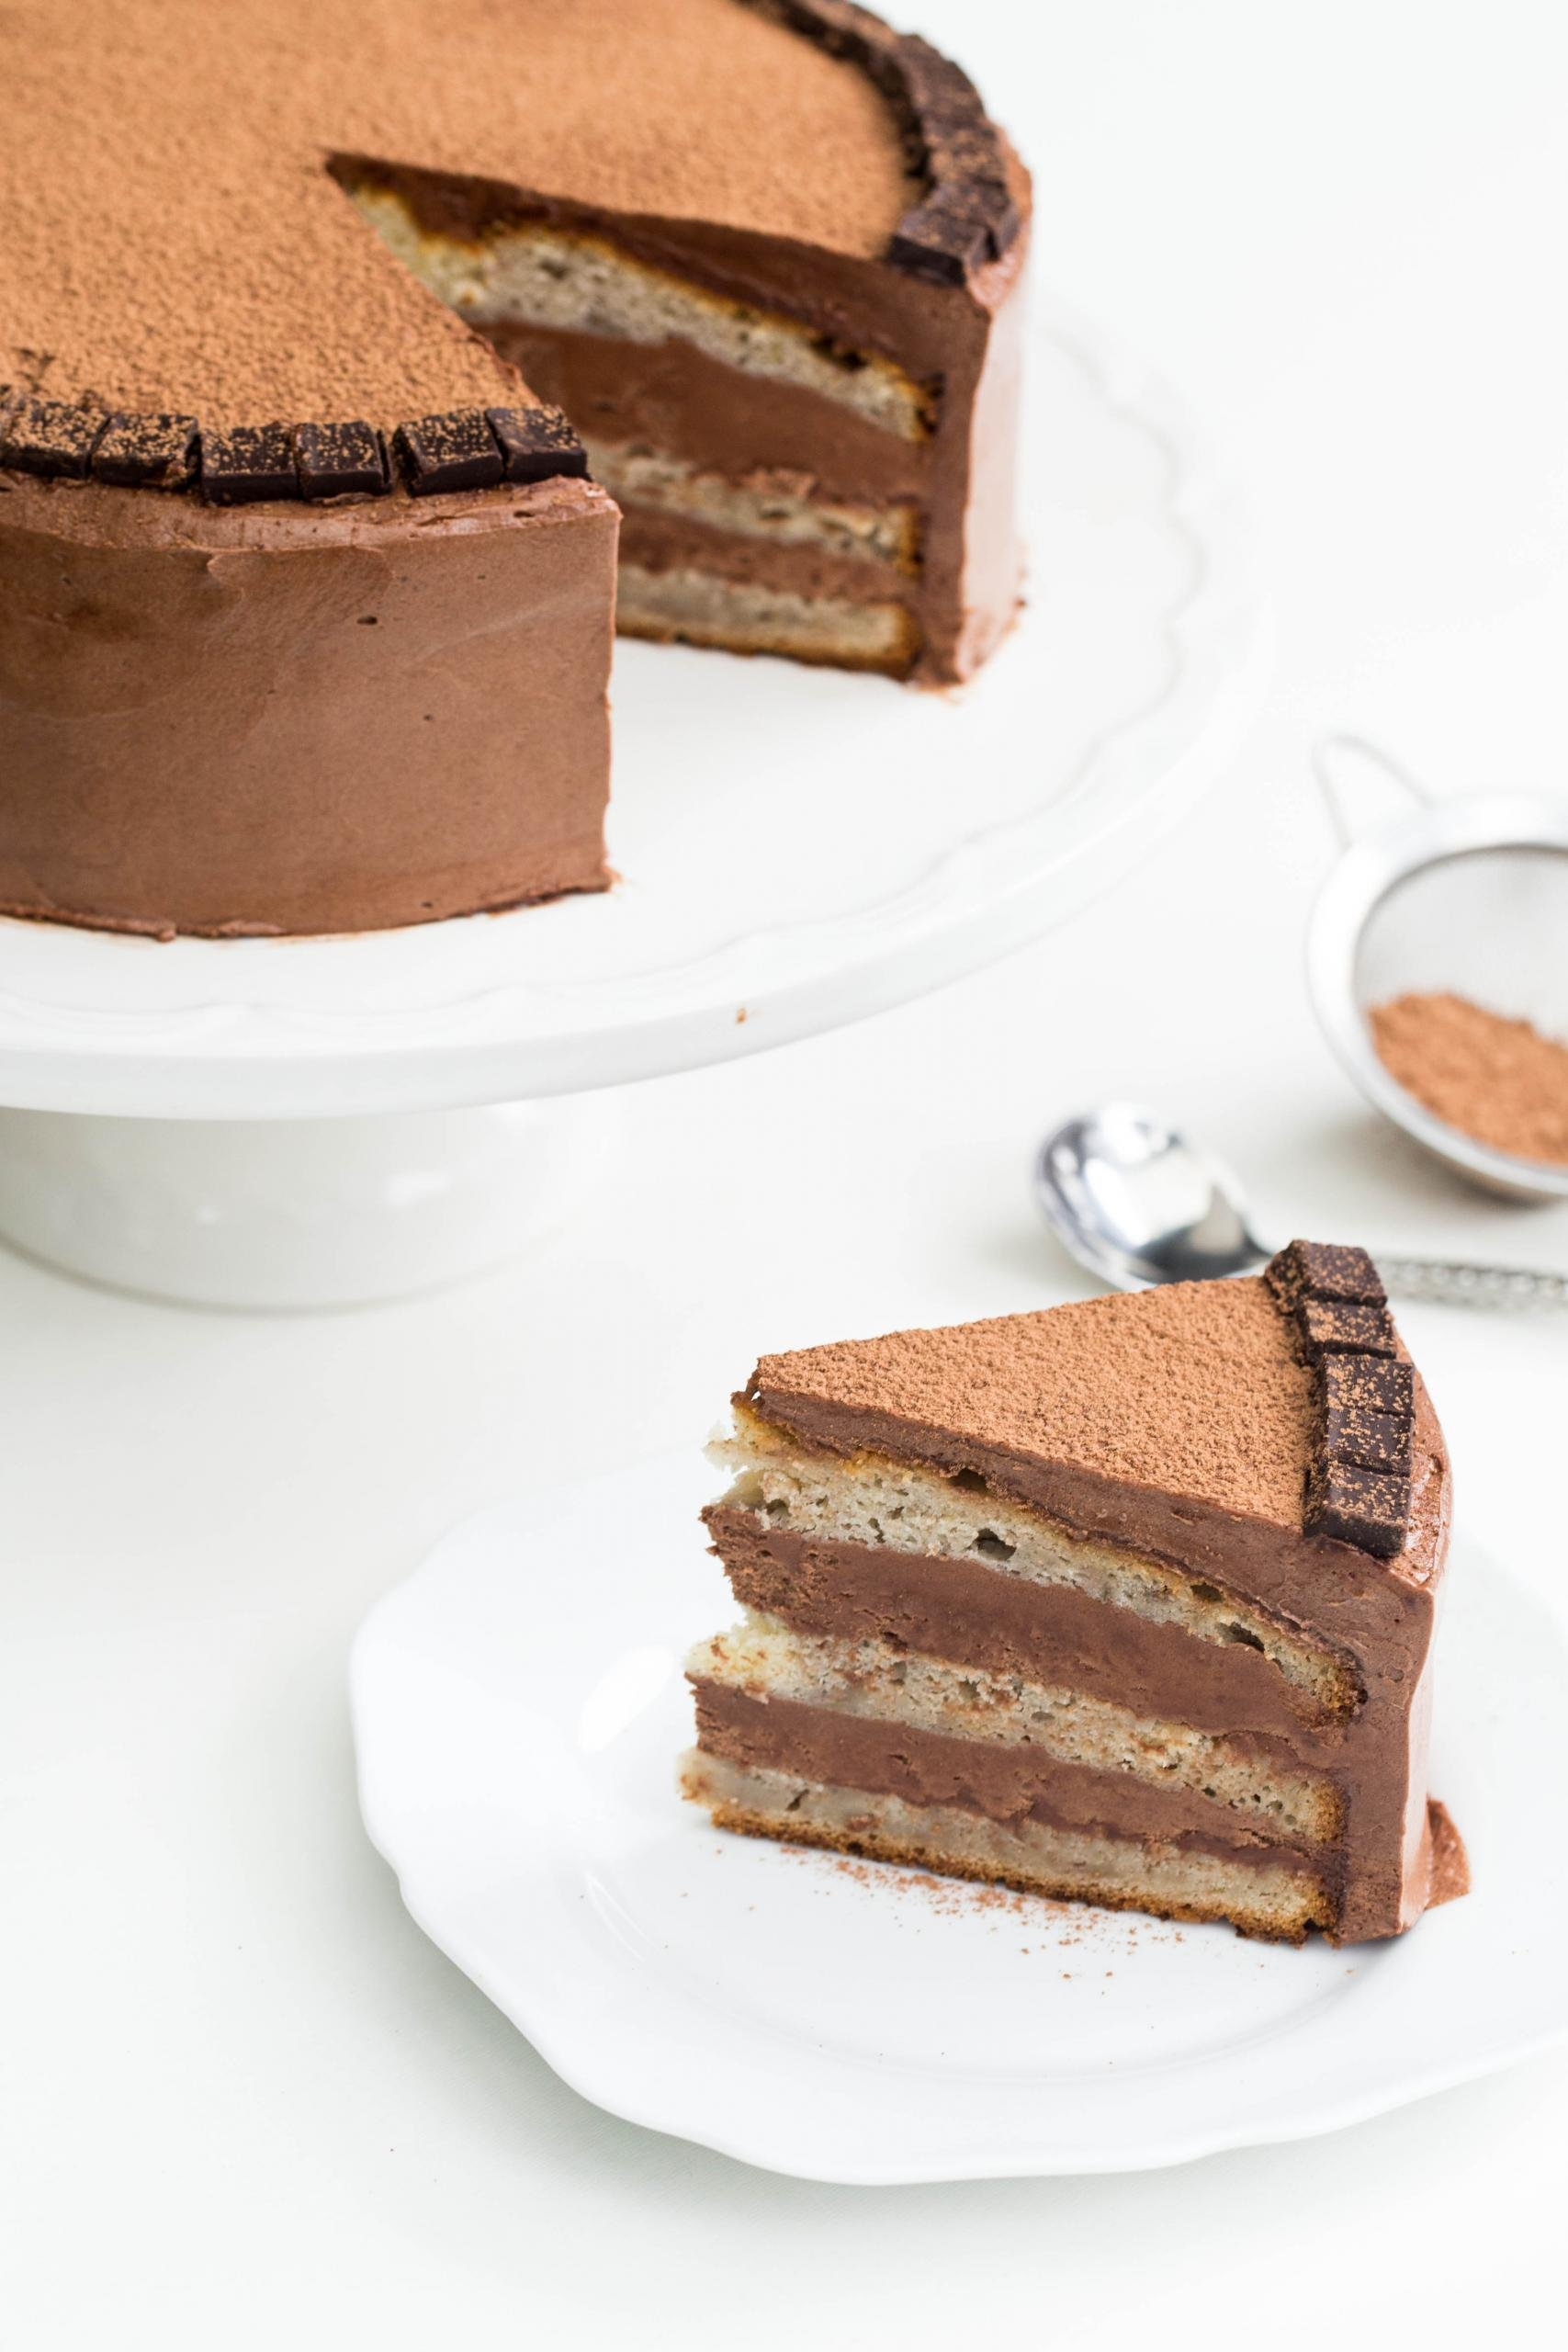 Chocolate Nutella Banana Cake slice on a plate with the full cake behind it